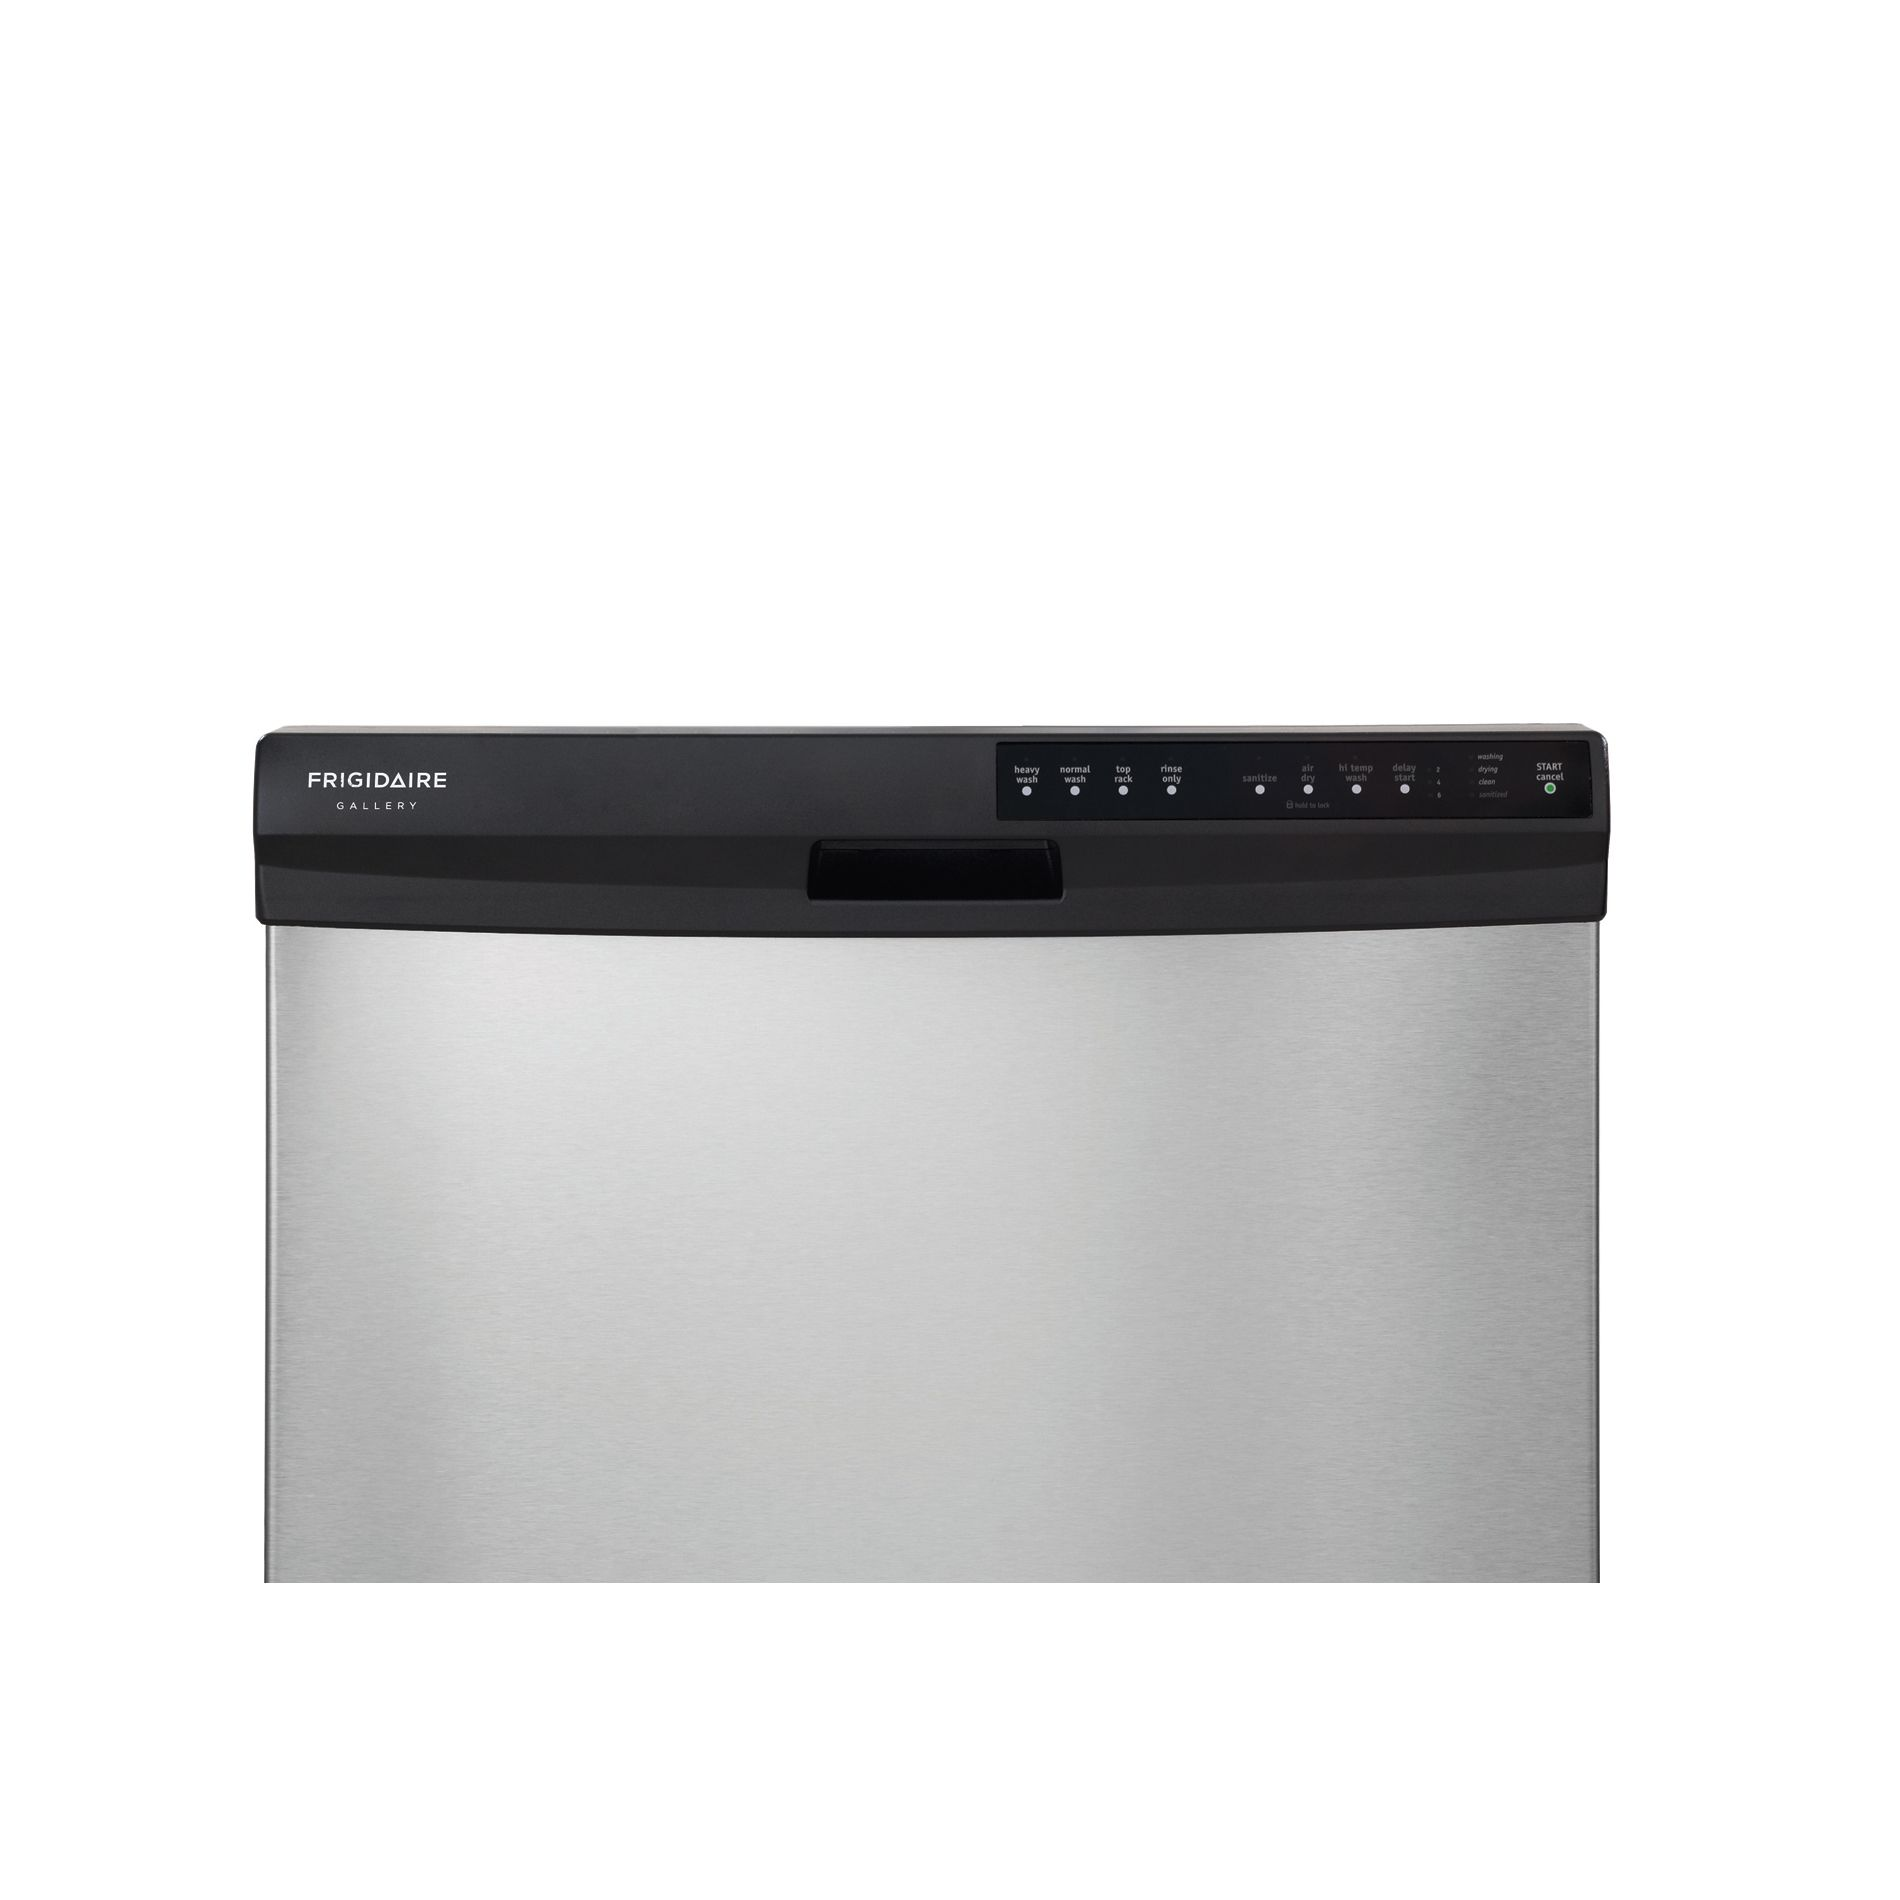 "Frigidaire 24"" Built-In Dishwasher - Stainless Steel"